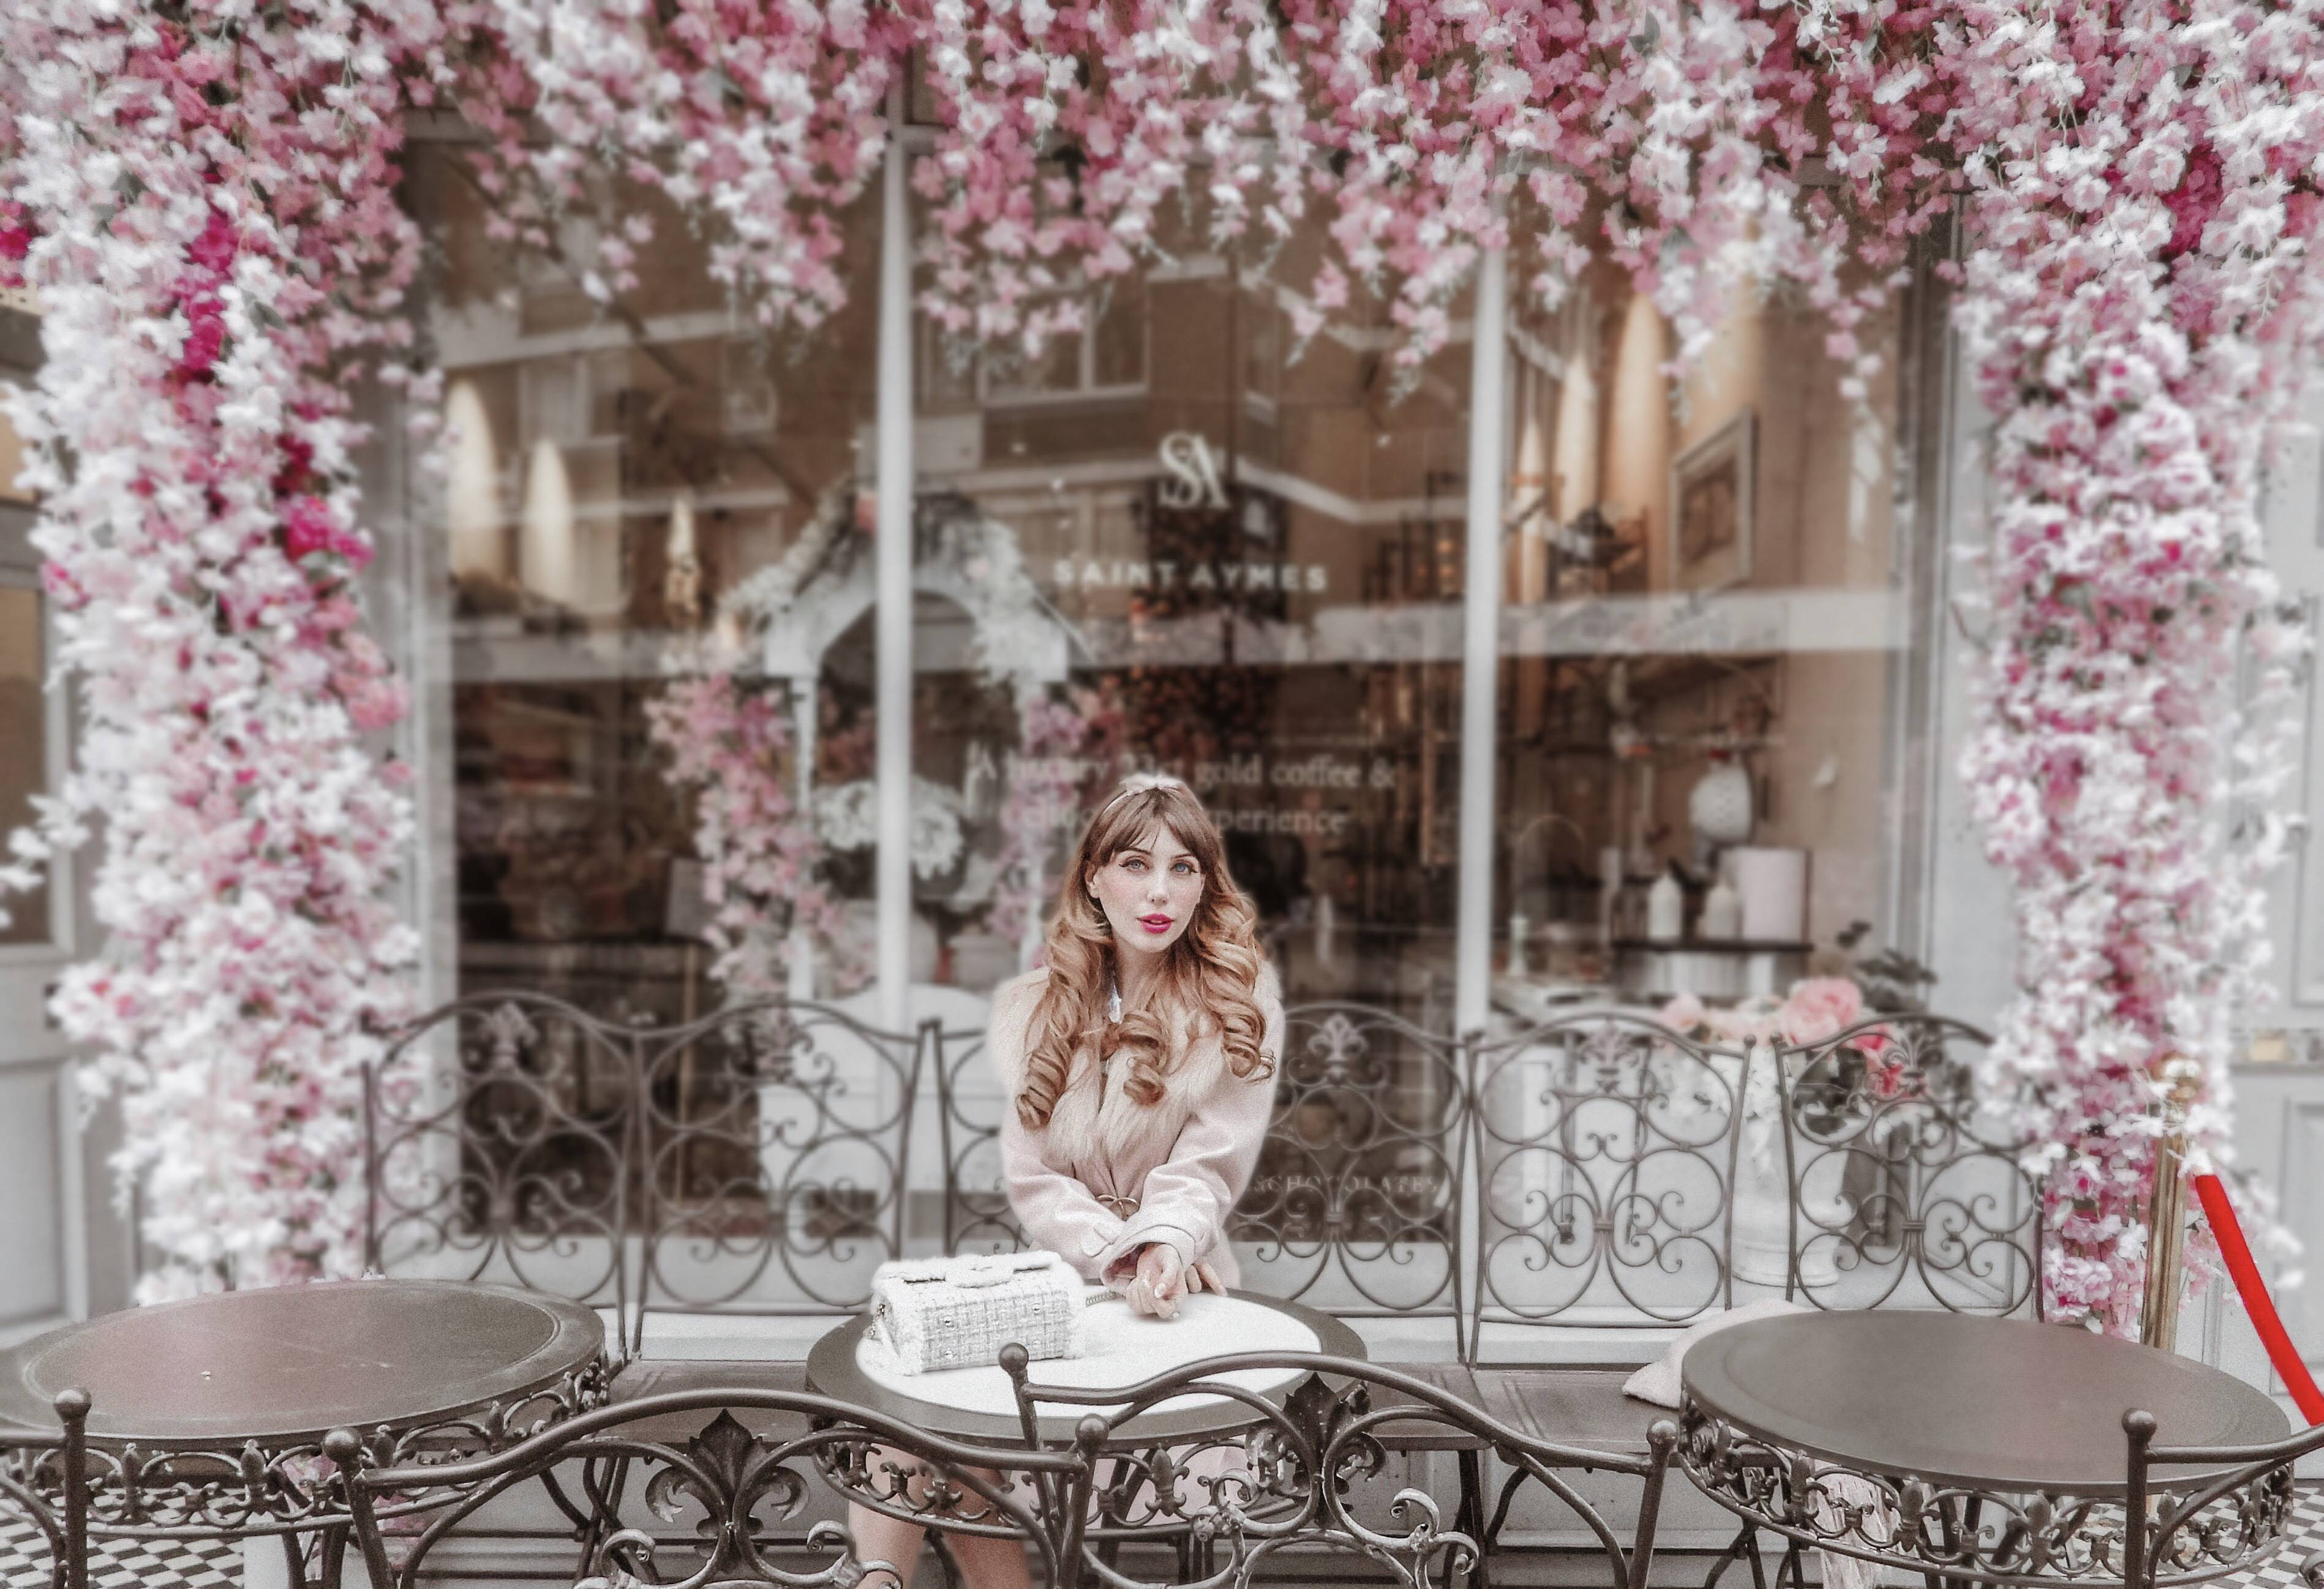 Romantic Date In London – Afternoon Tea at Saint Aymes